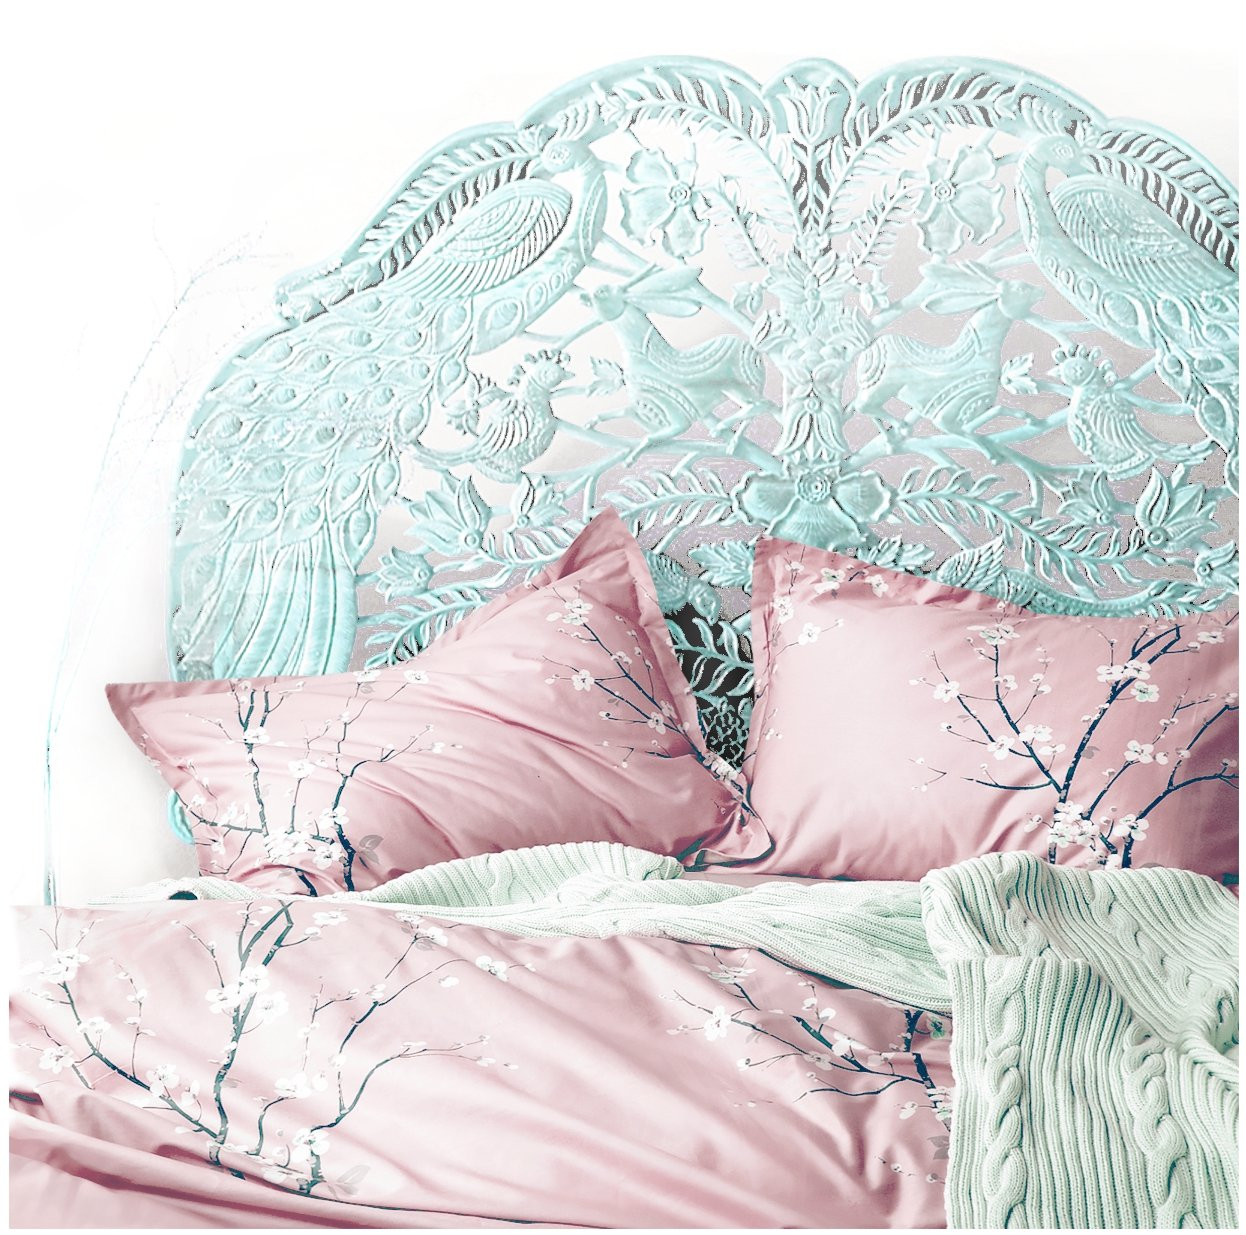 0ae0afbea1c20 Japanese Oriental Style Cherry Blossom Floral Print Duvet Quilt Cover 3  Piece Cotton Bedding Set Full Queen or King Teal Blue and White (Queen